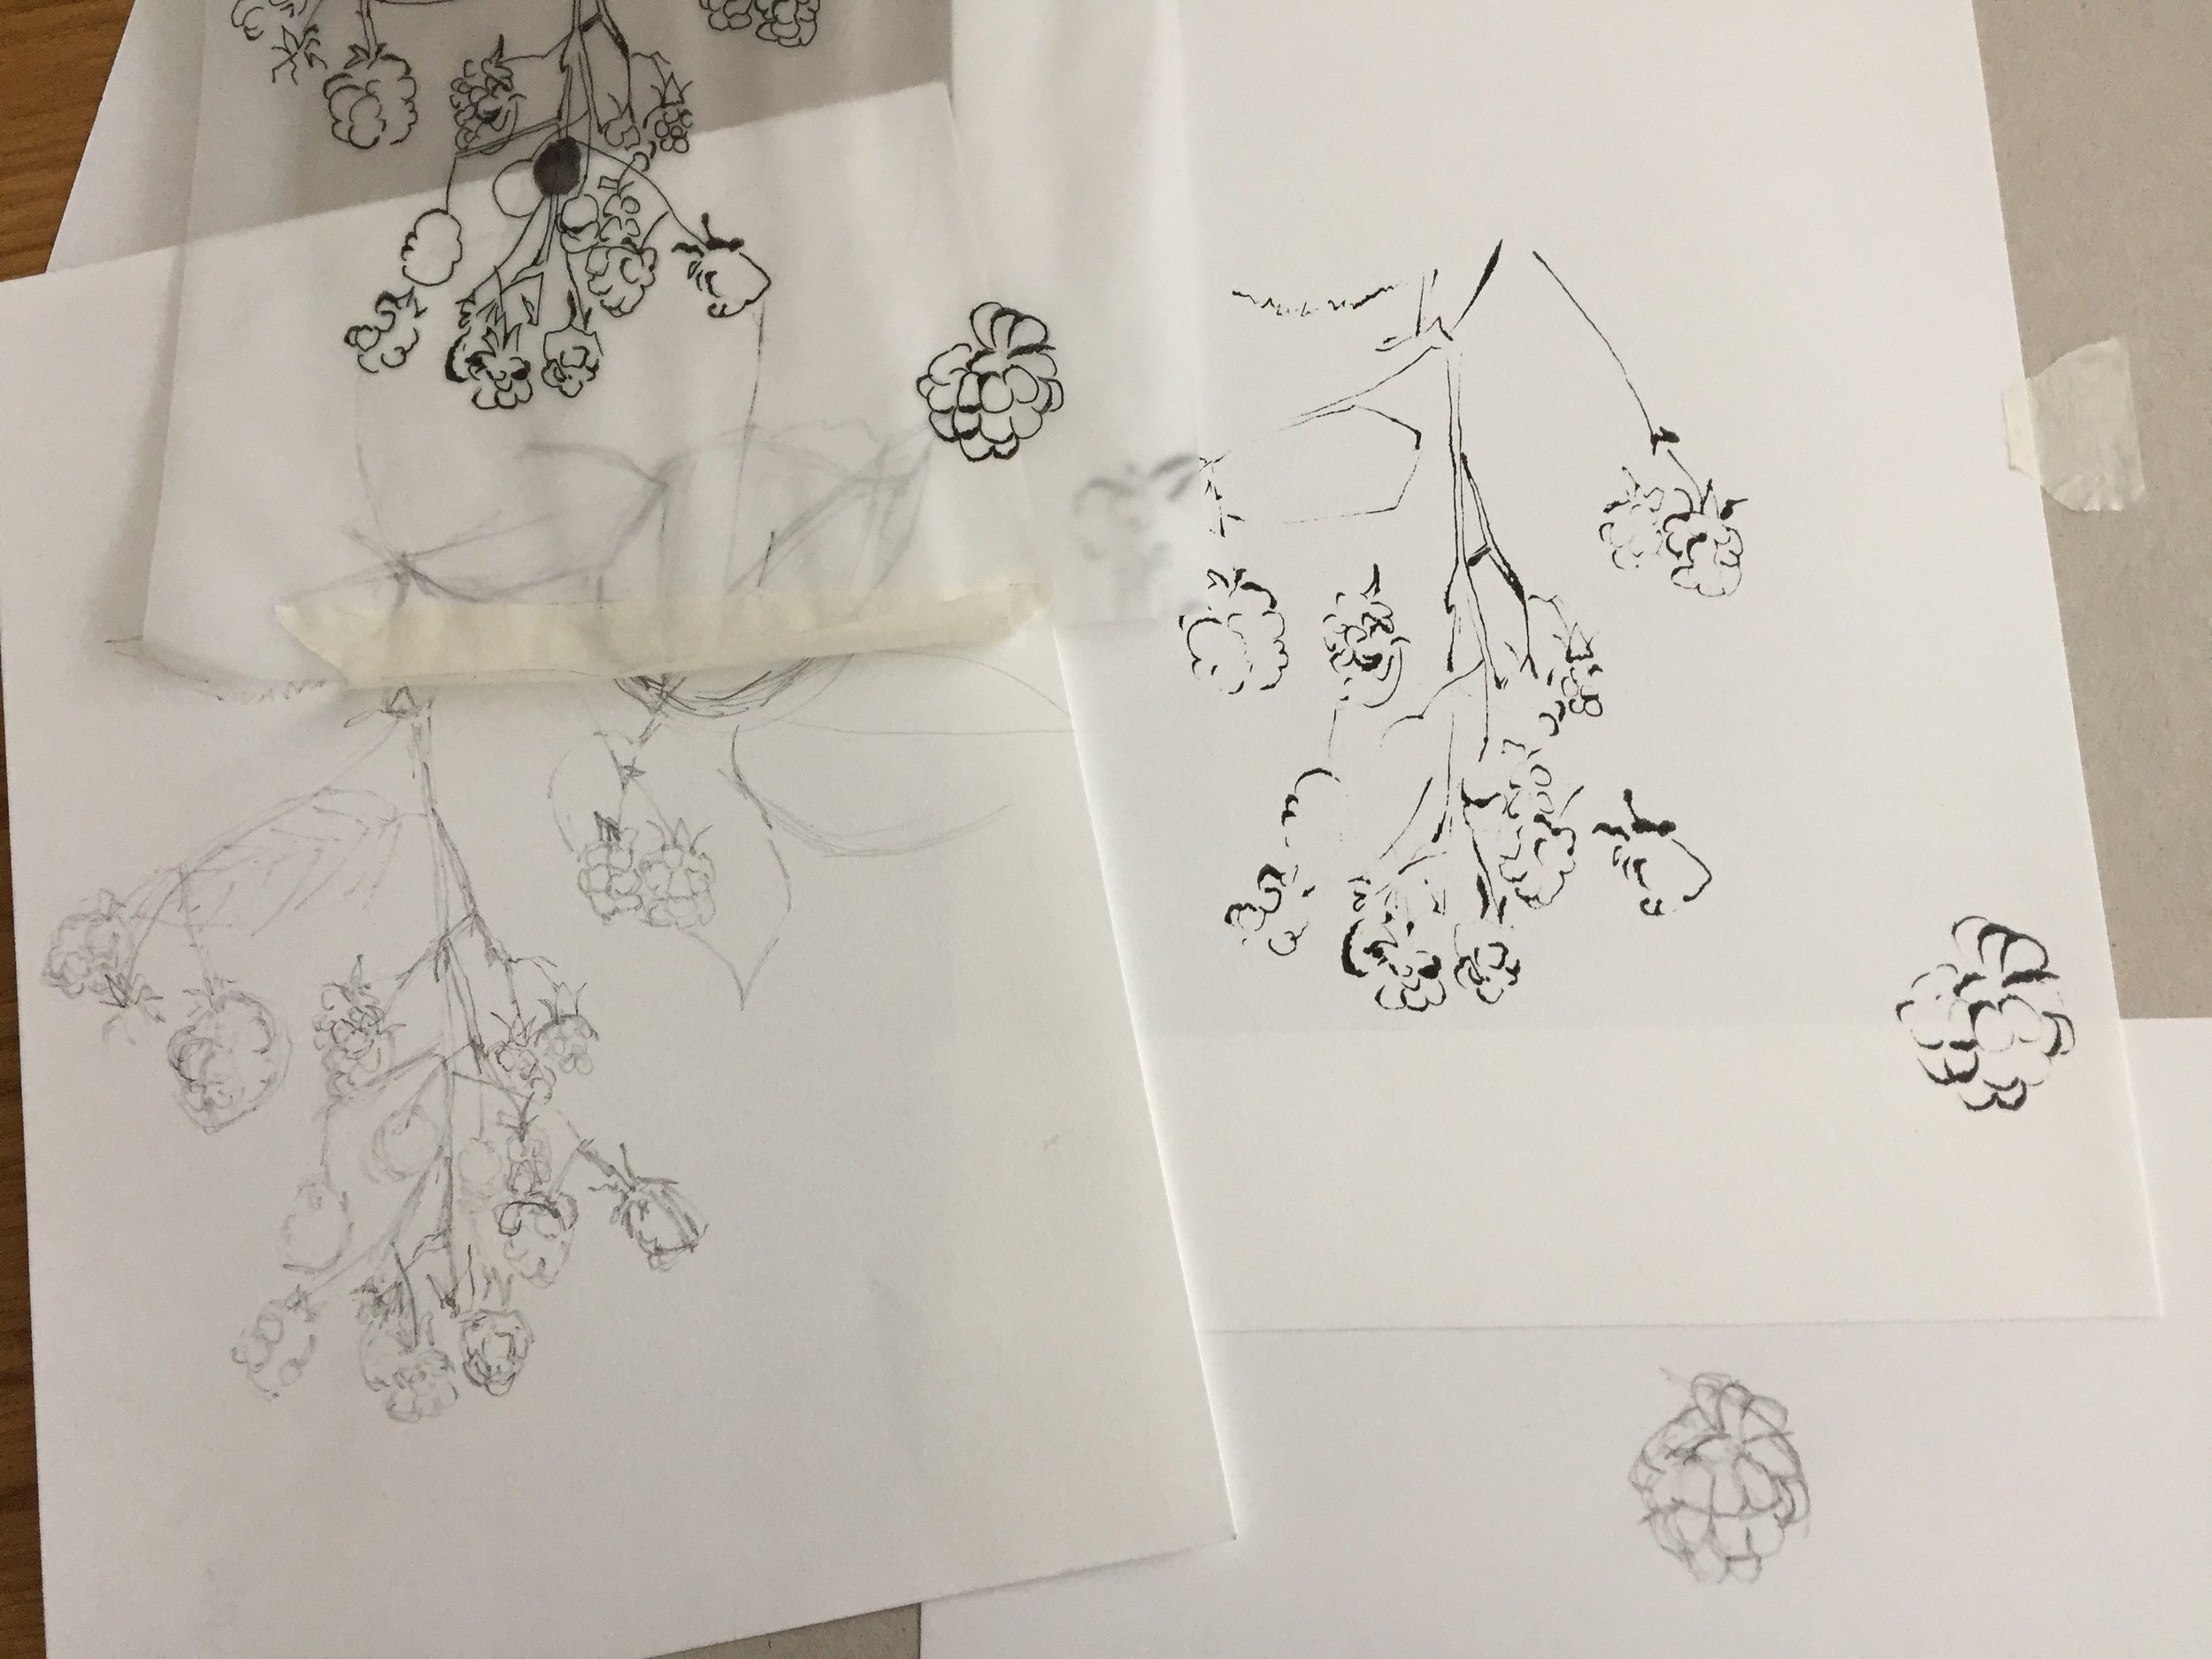 Experimenting with the blotted line technique and quick sketches of blackberries.